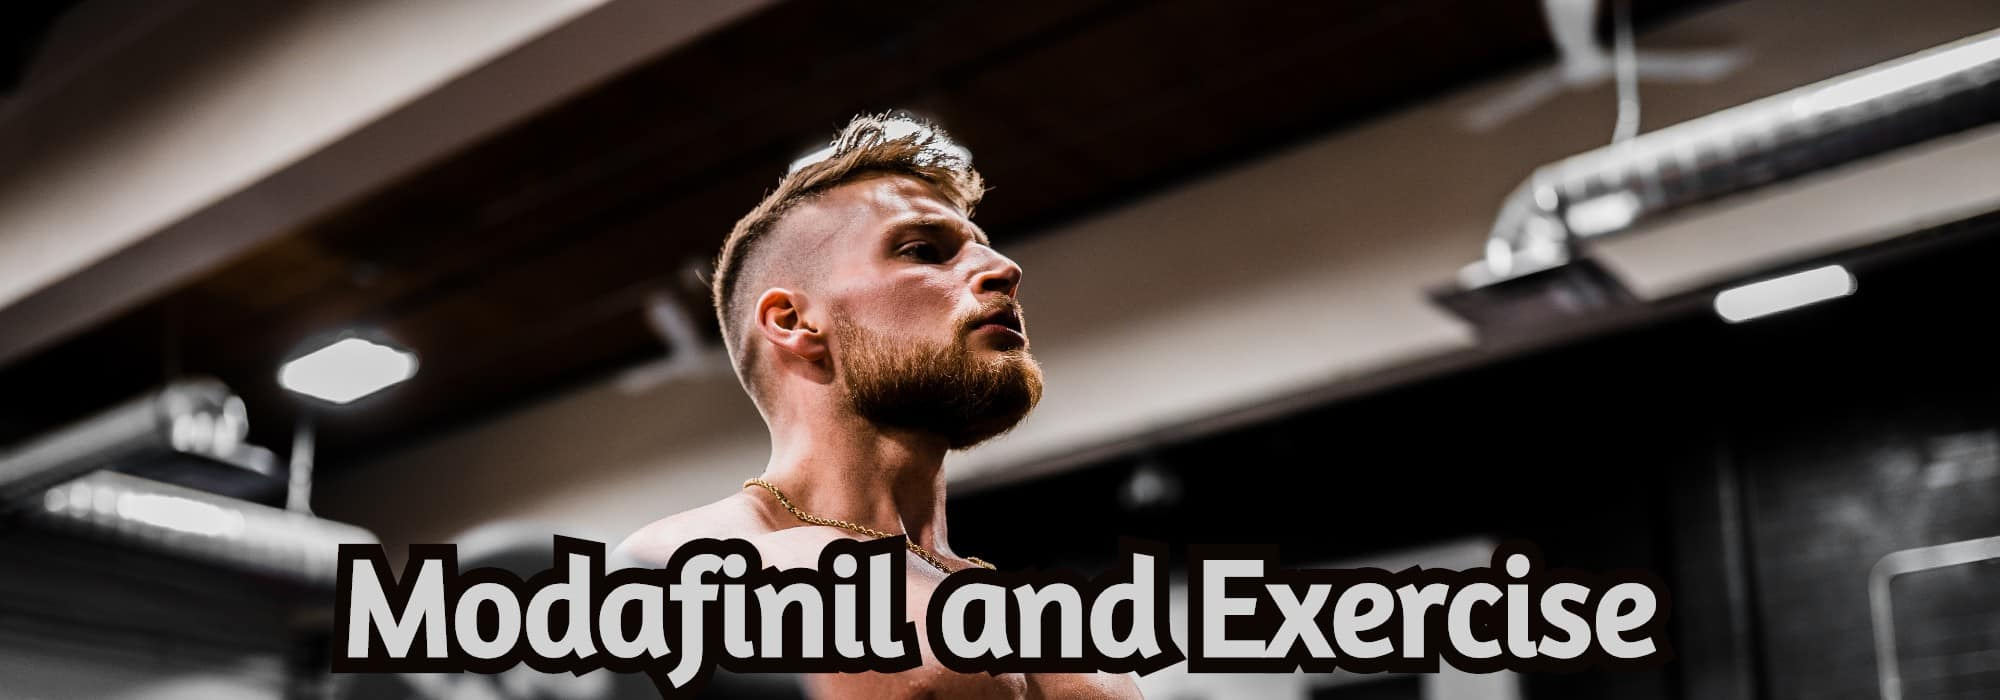 Modafinil and Exercise